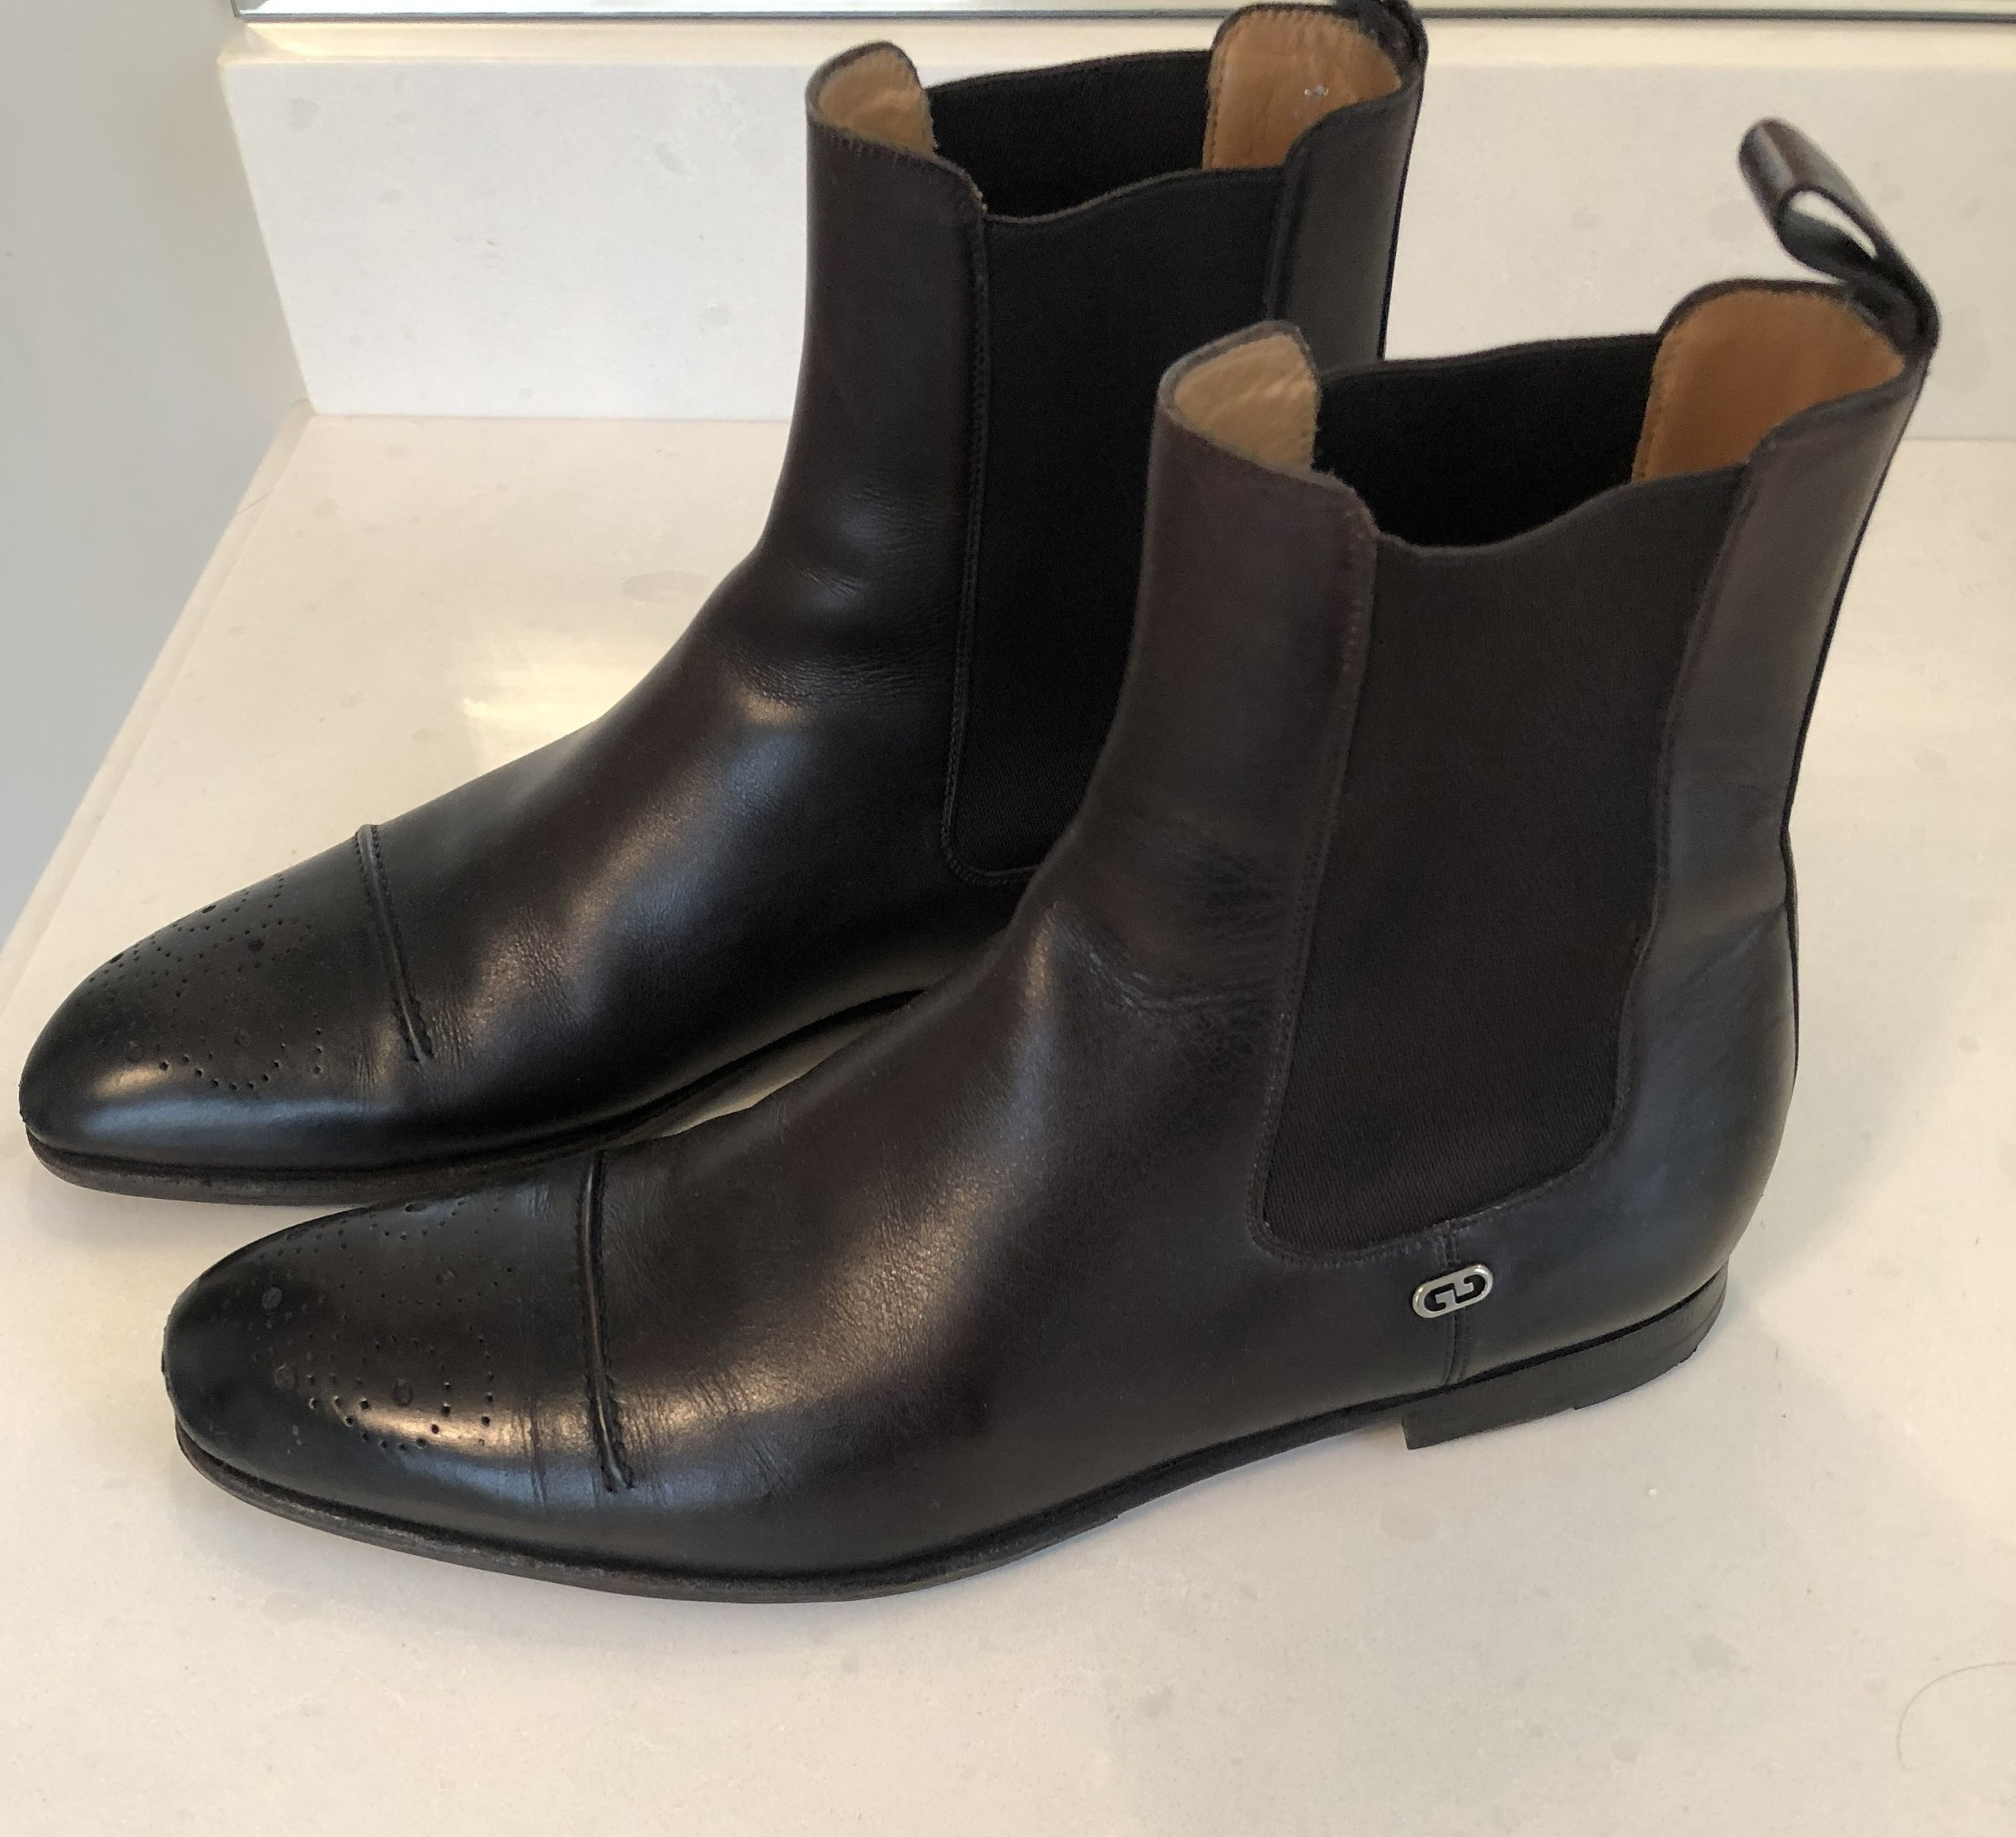 Like these black Chelsey boots by Gucci.